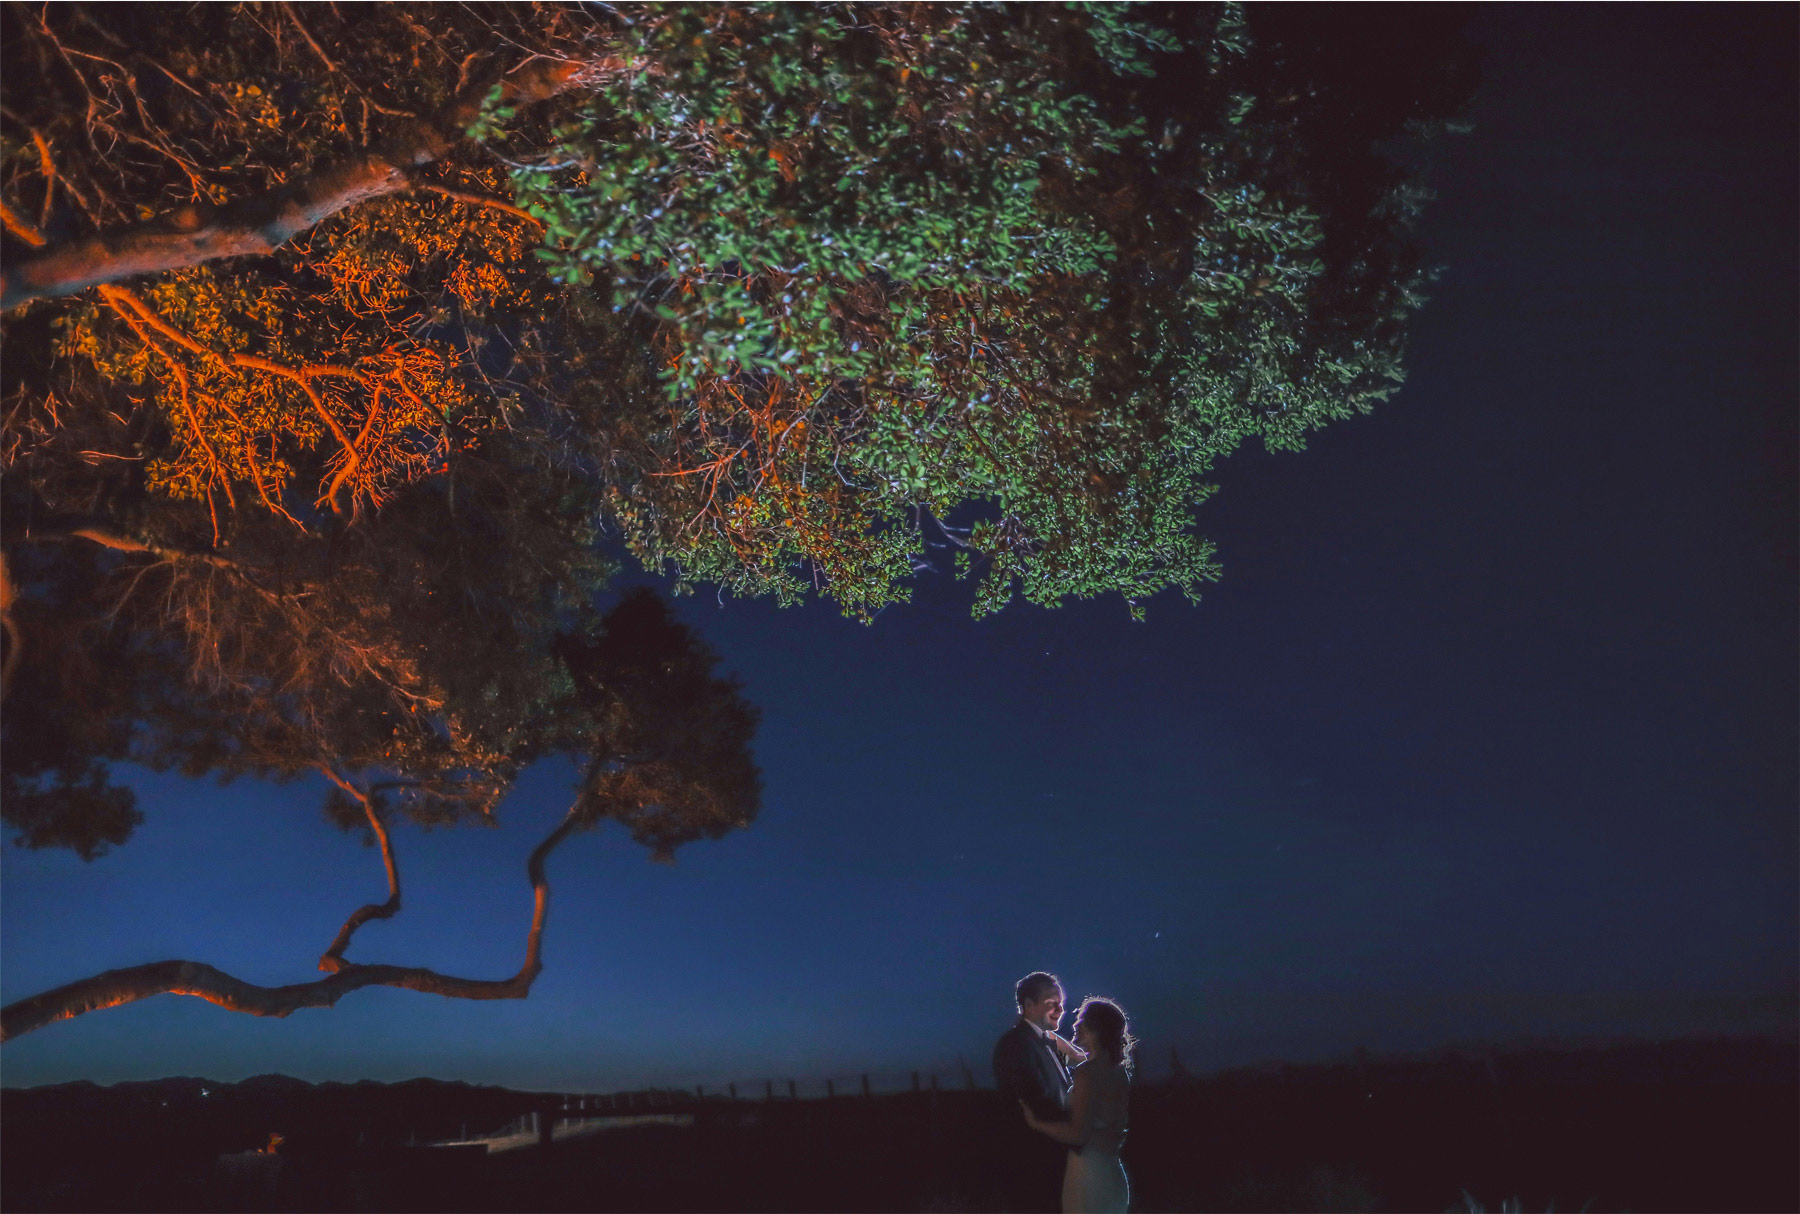 30-Napa-California-Wedding-Photographer-by-Andrew-Vick-Photography-Spring-Destination-Carneros-Resort-and-Spa-Reception-Bride-Groom-Embrace-Night-Alex-and-Roger.jpg